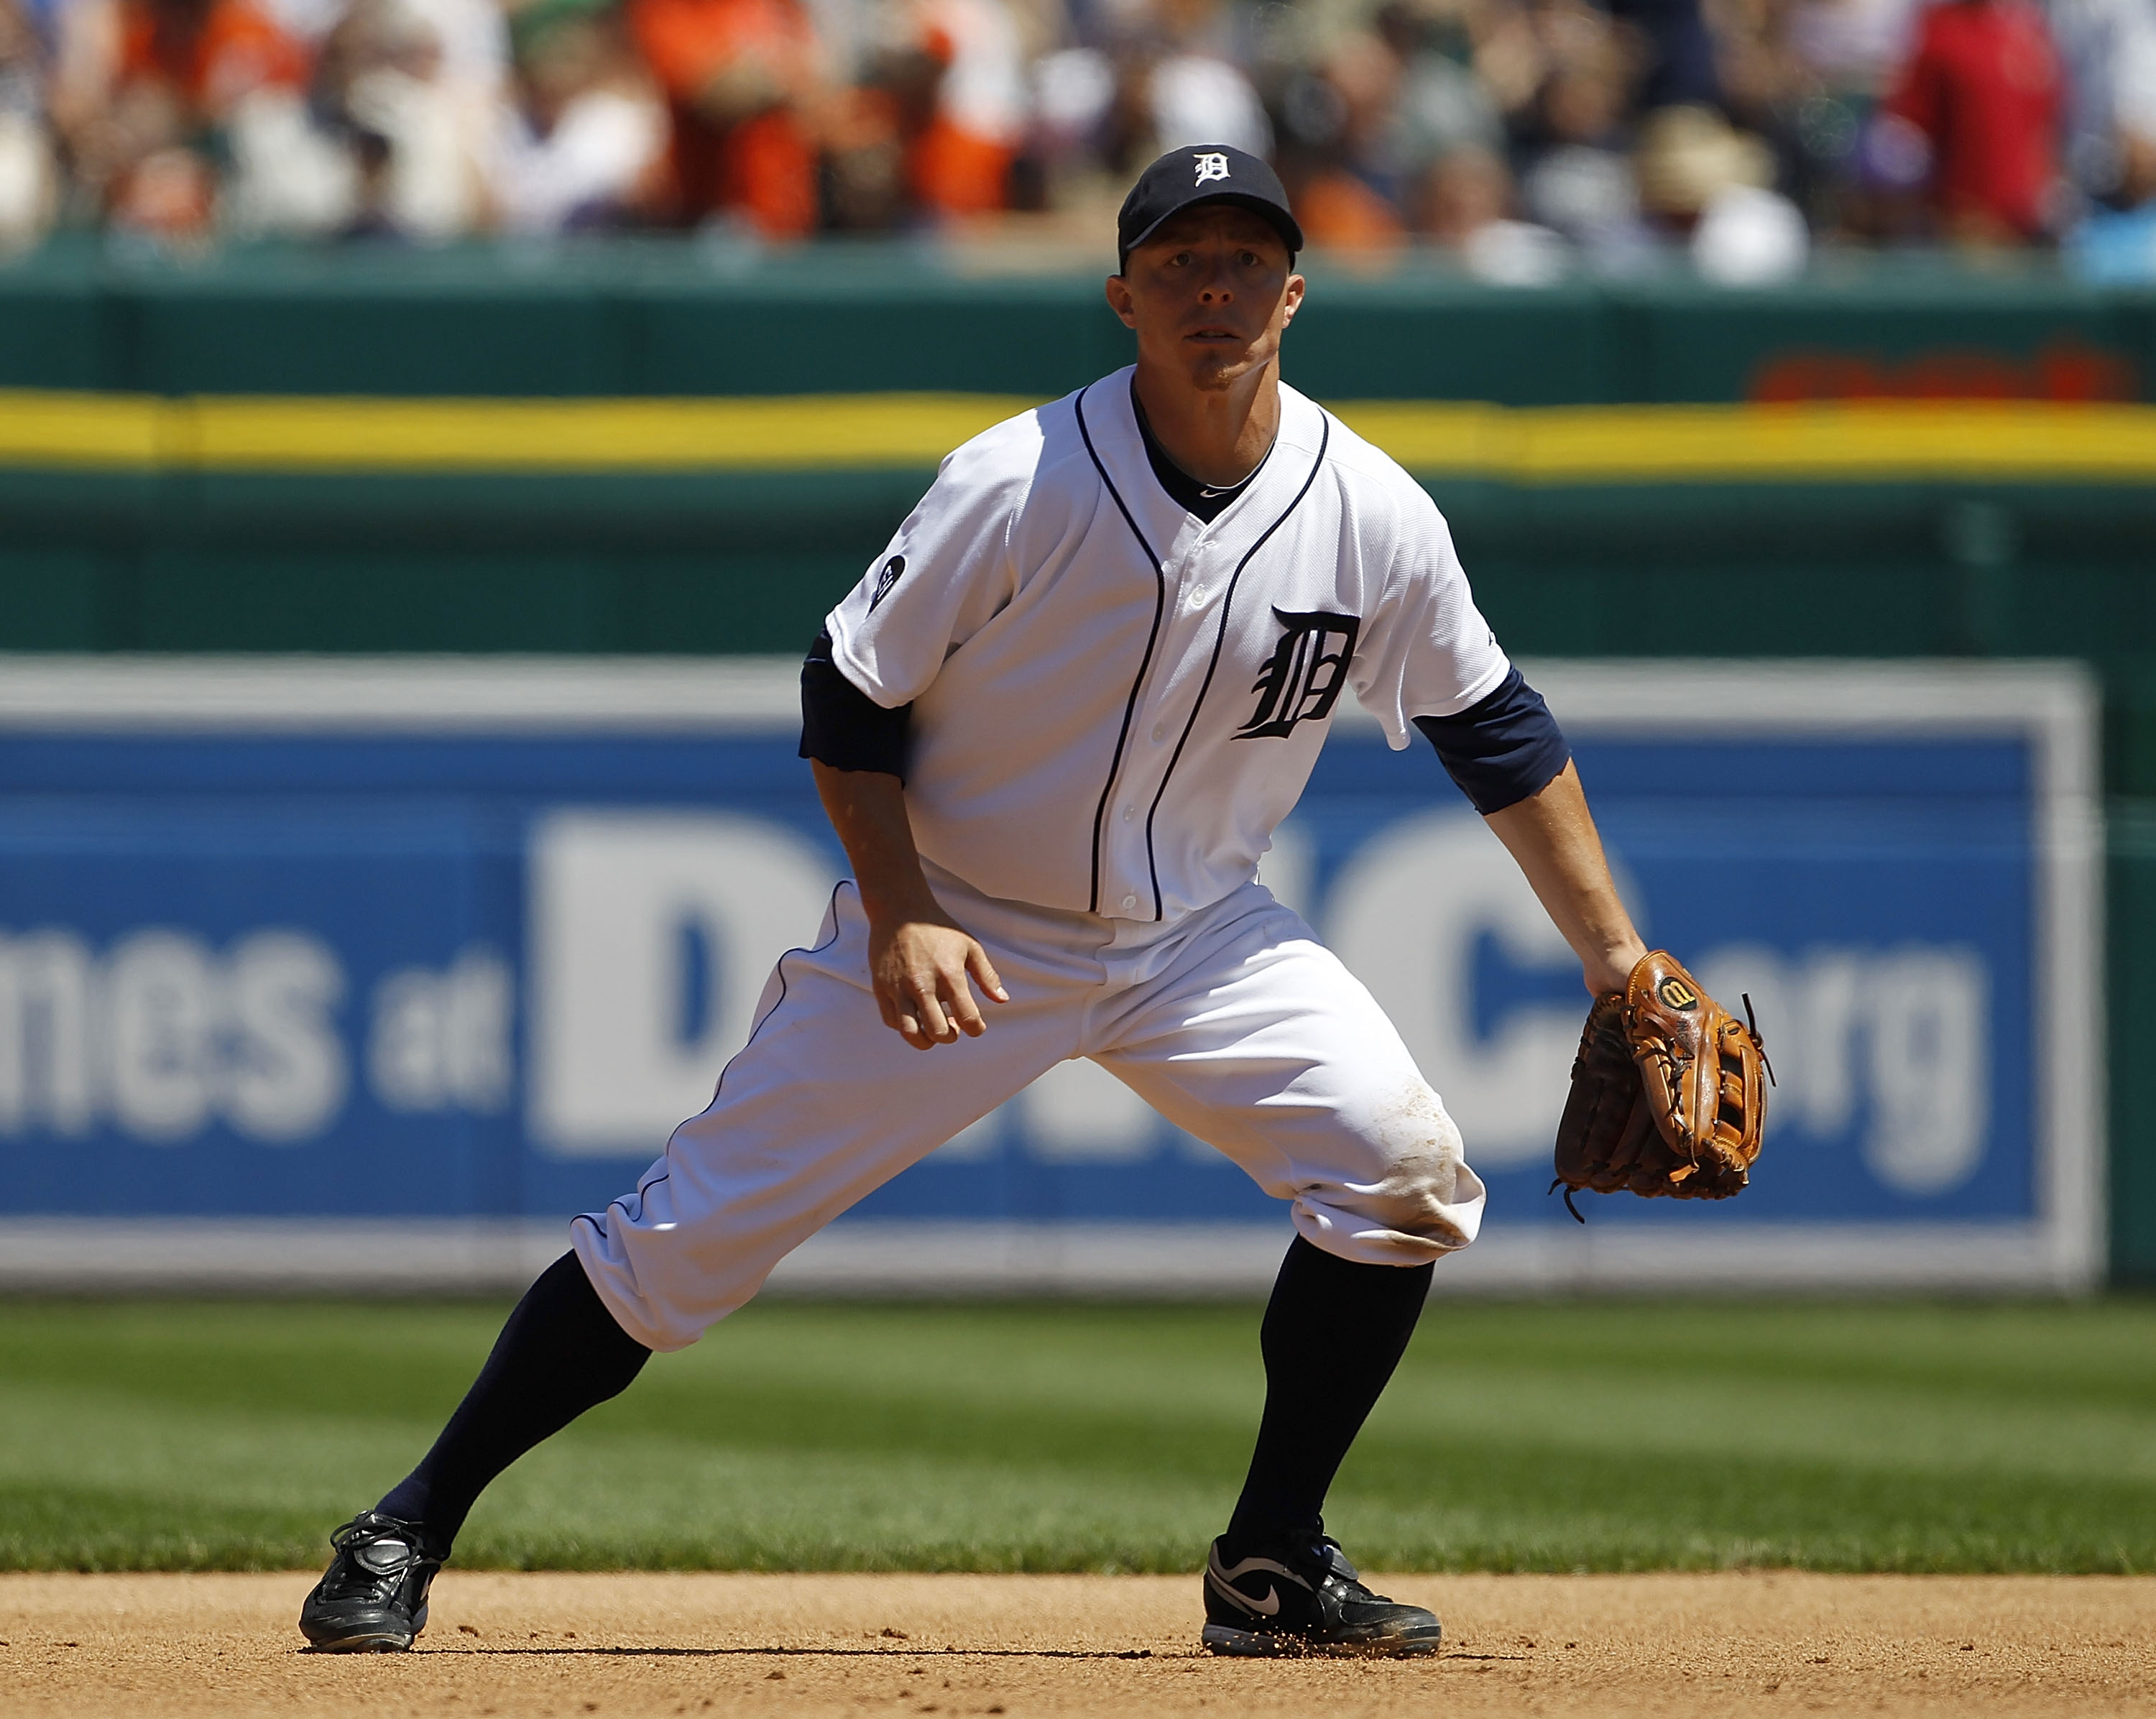 DETROIT - JUNE 17:  Brandon Inge #15 of the Detroit Tigers during the game against the Washington Nationals on June 17, 2010 at Comerica Park in Detroit, Michigan. The Tigers defeated the Nationals 8-3. (Photo by Leon Halip/Getty Images)